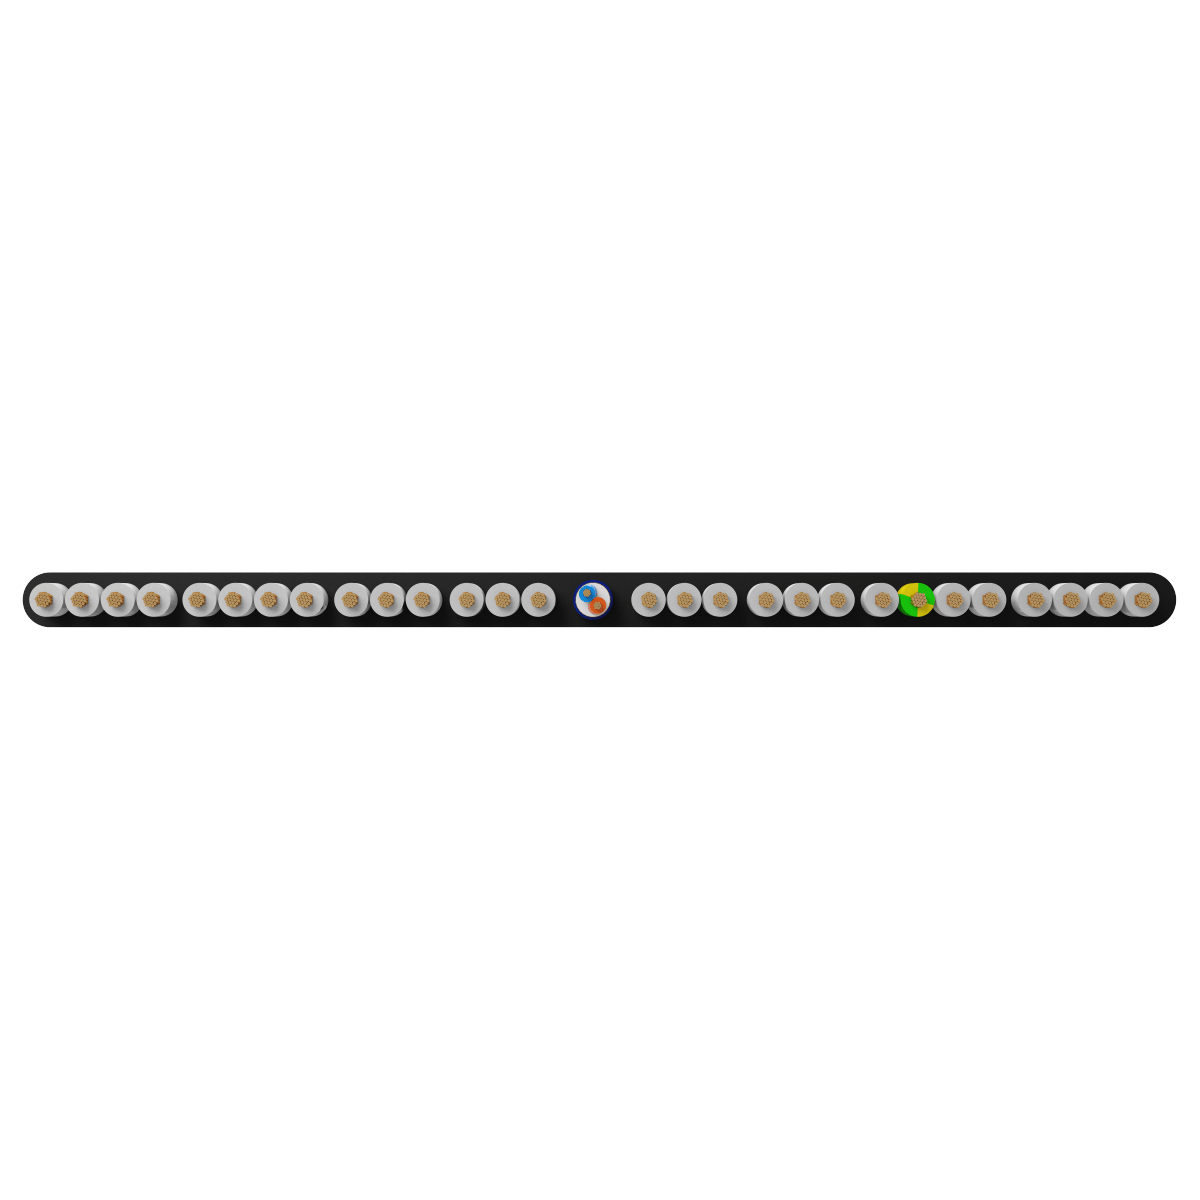 28x0.75 +1Px(2x0.22) mm² H05VVH6-F Foiled Elevator Cable